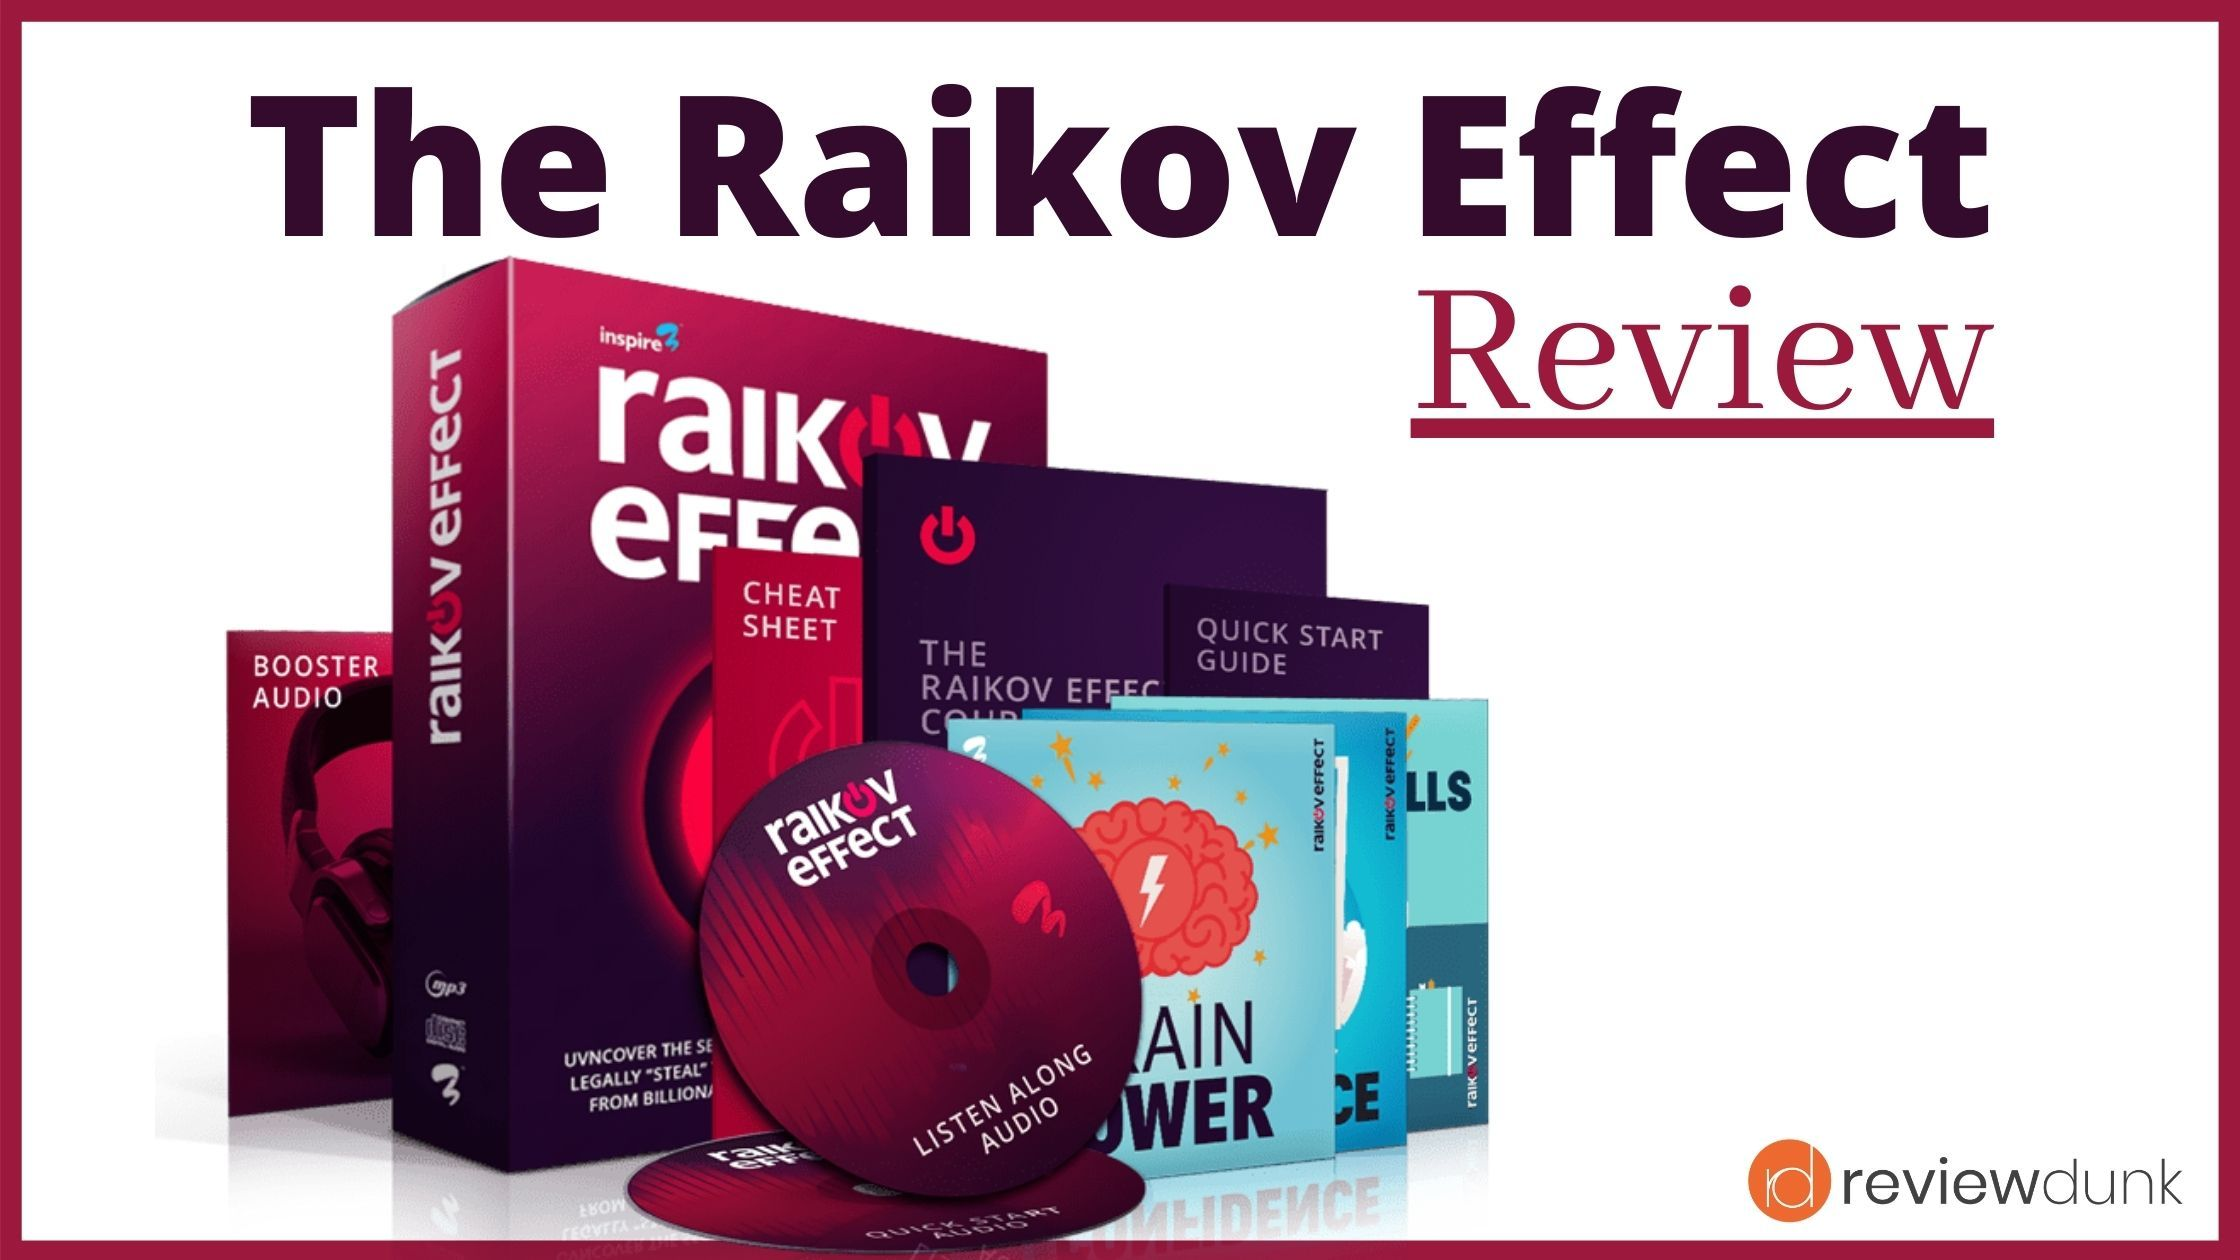 The Raikov Effect Program Review by Reviewdunk